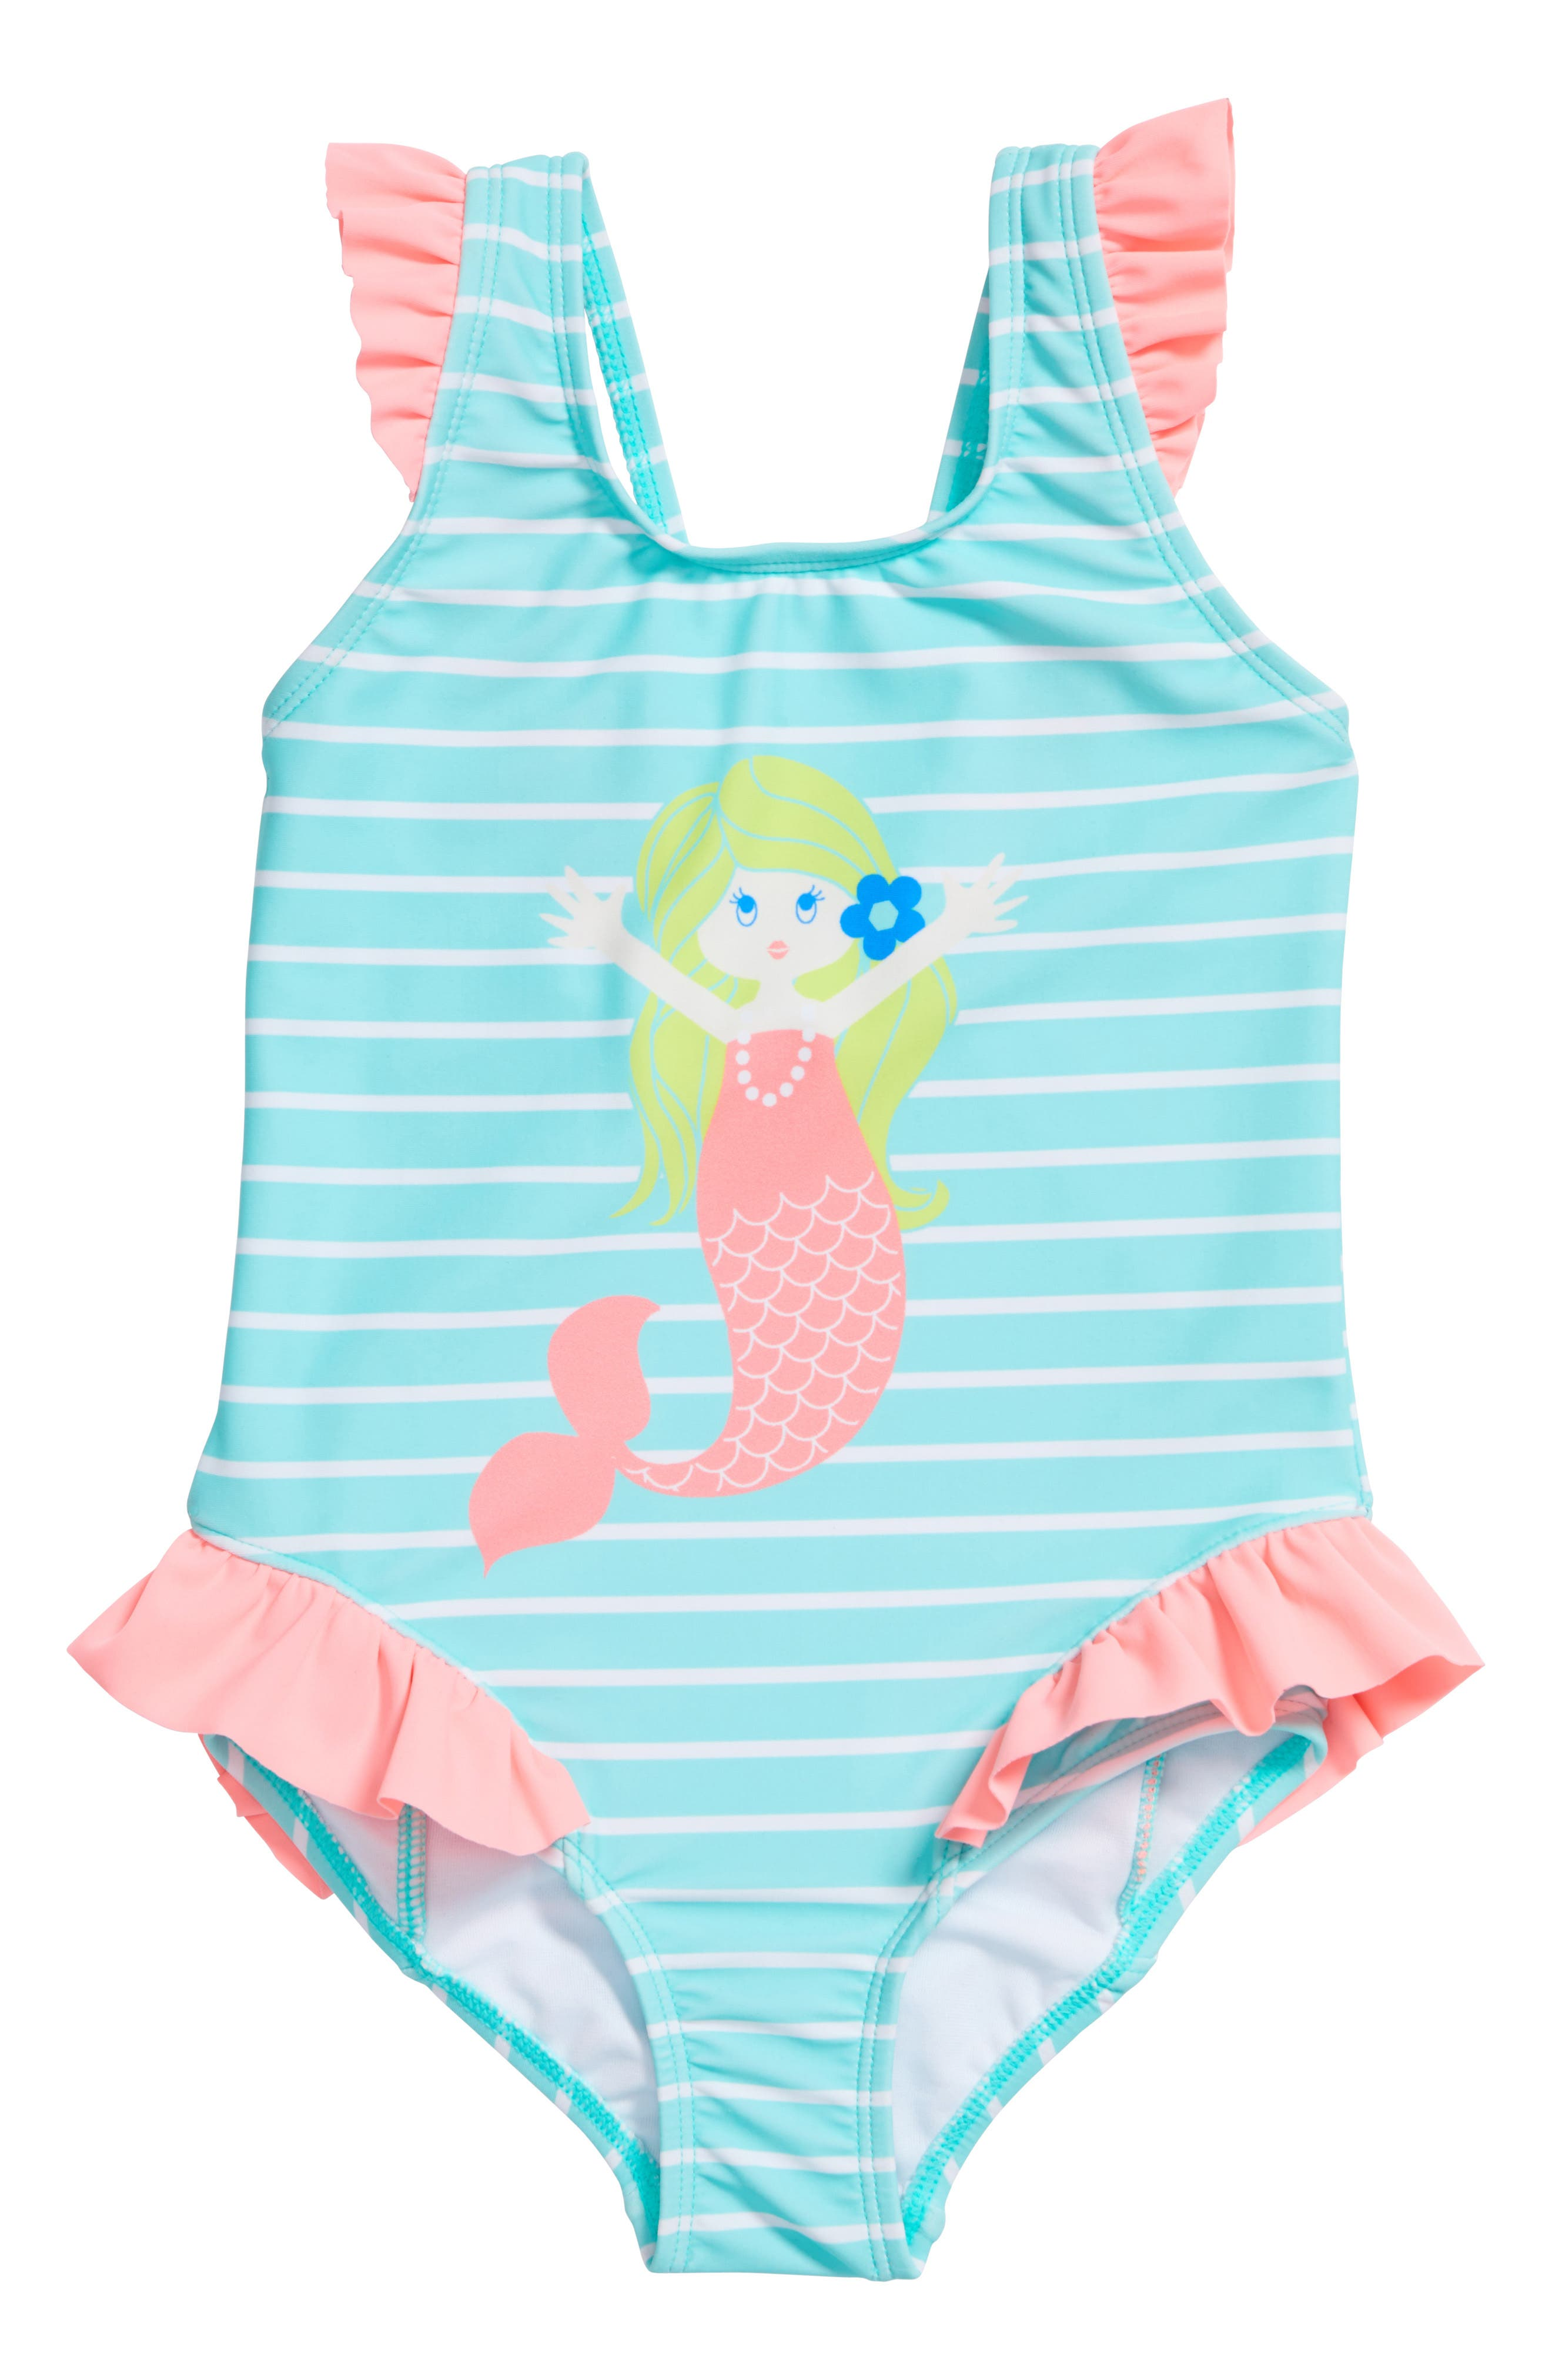 All Is Love One-Piece Swimsuit,                             Main thumbnail 1, color,                             Seafoam/ Pink